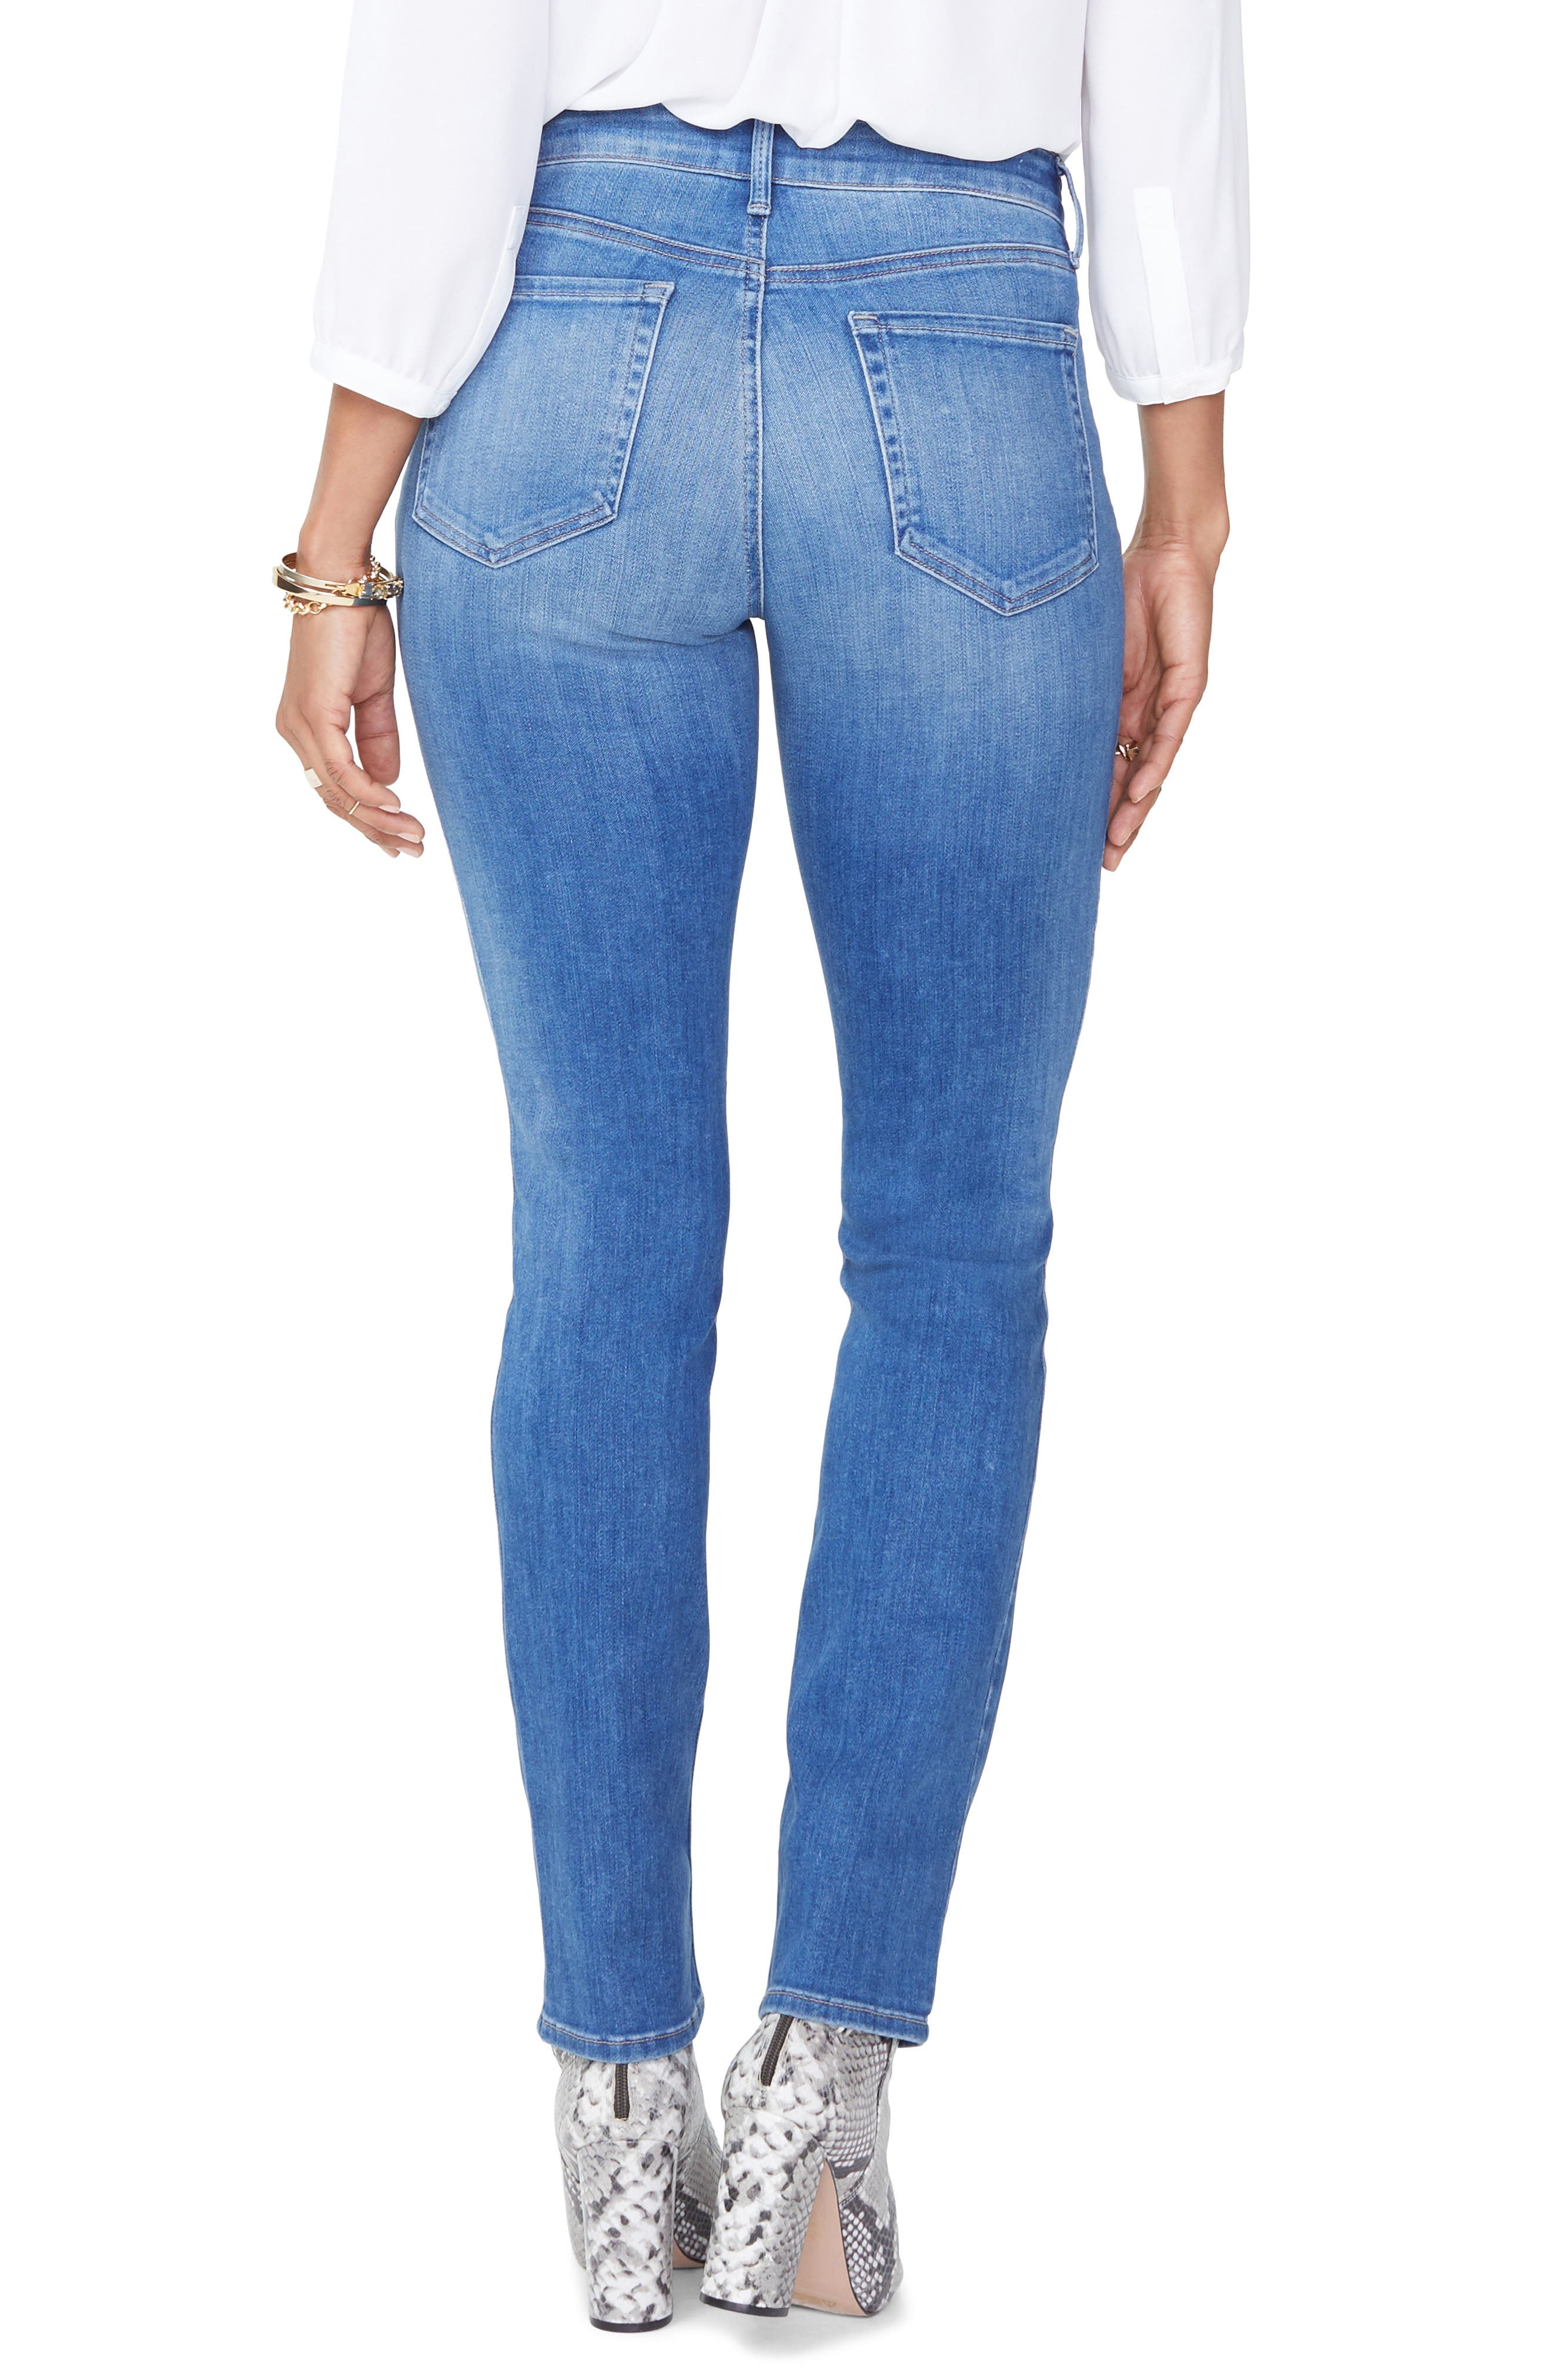 Sheri High Waist Ripped Slim Stretch Ankle Jeans,                             Alternate thumbnail 2, color,                             428